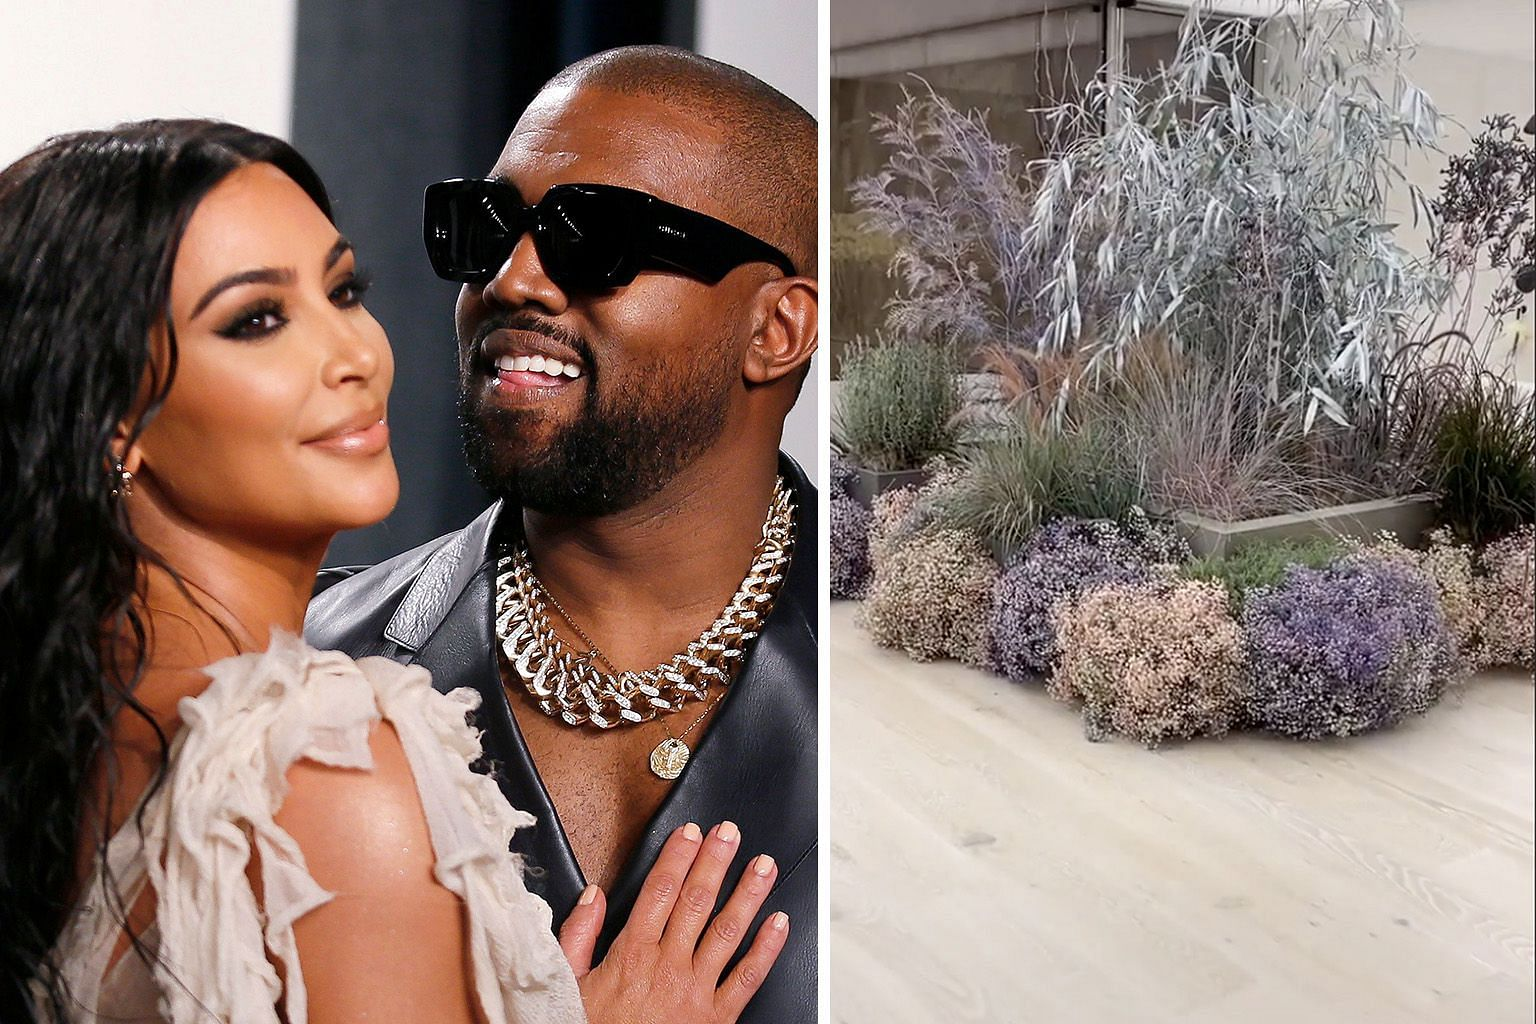 BATHROOM OF BLOOMS FOR BILLIONAIRE WIFE: American rapper Kanye West surprised his wife Kim Kardashian (both right) on Tuesday morning by decking their bathroom with fresh flowers (left), People.com reported. Kardashian, 39, posted a video on Instagr